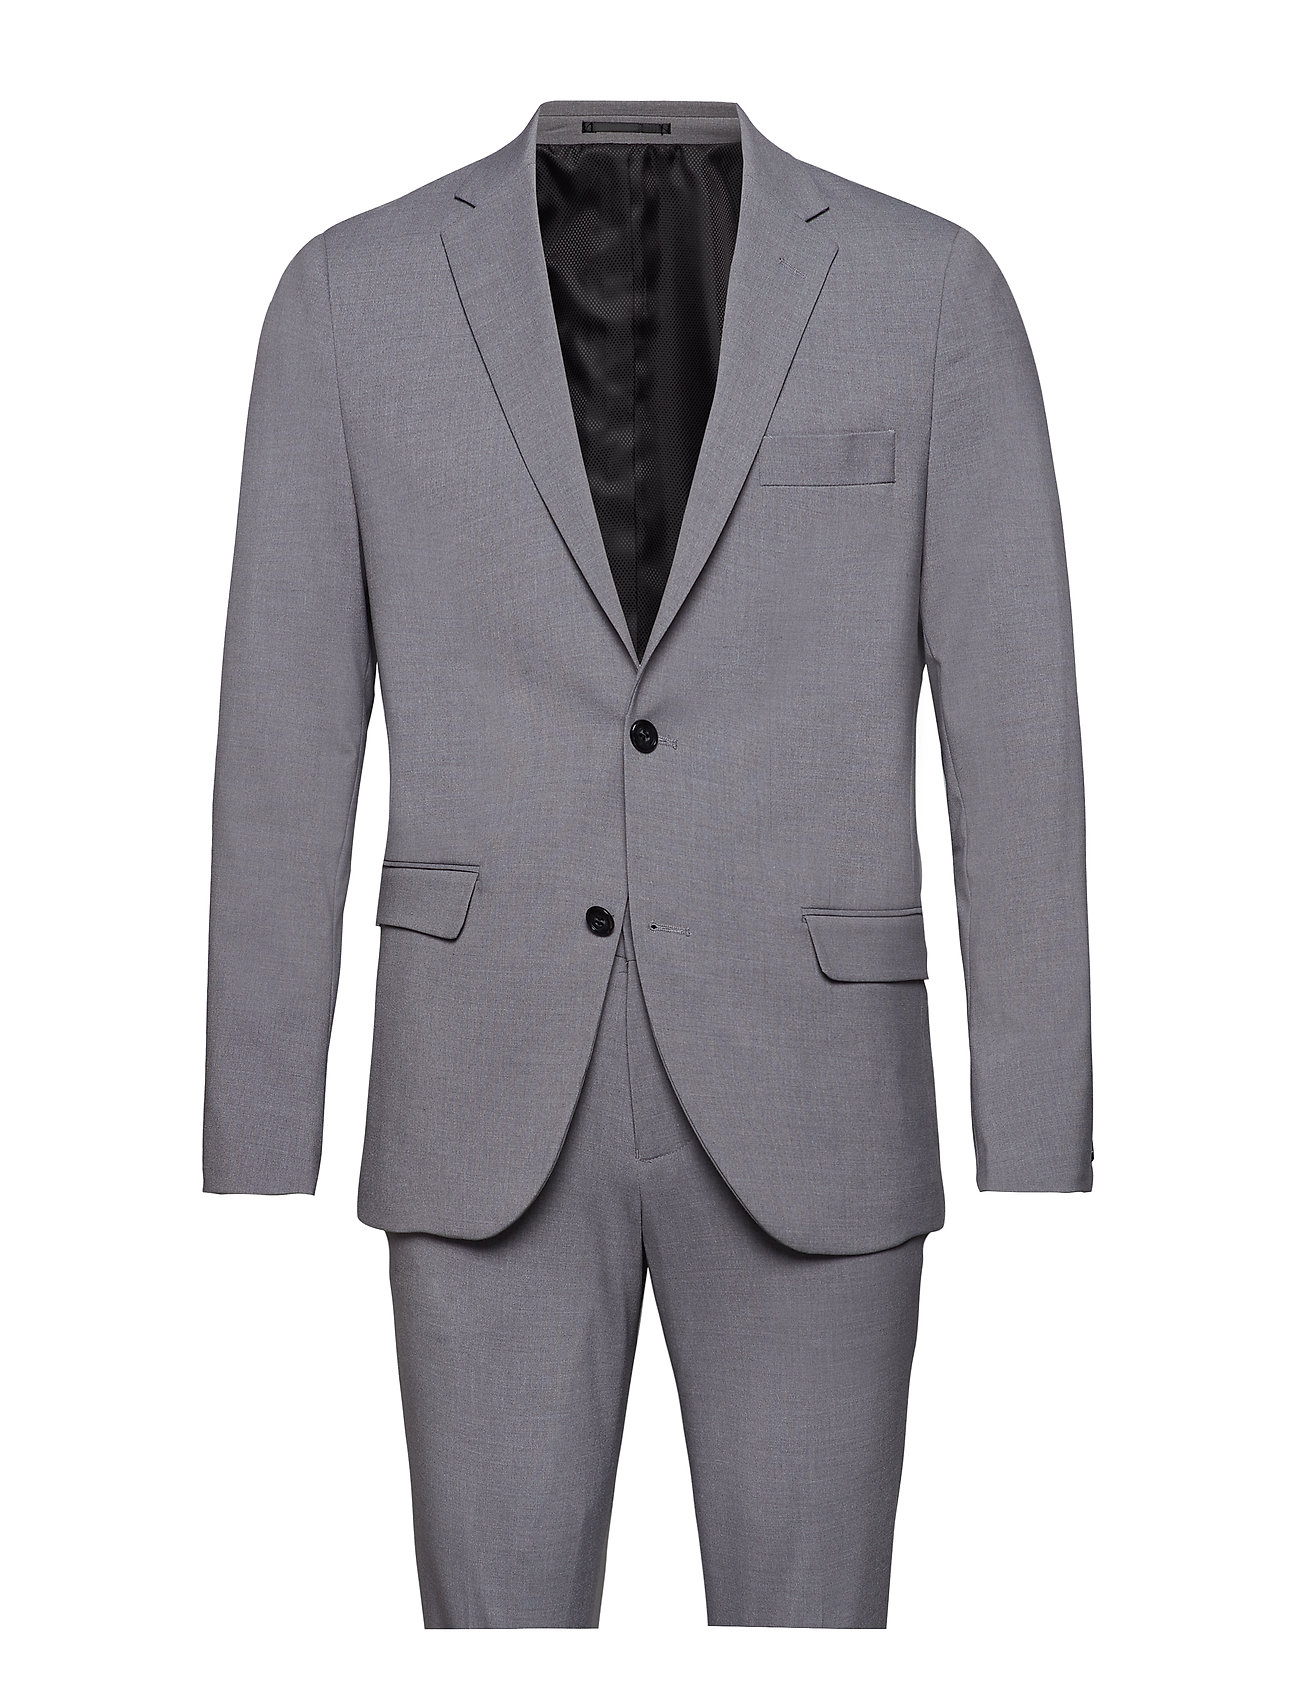 Lindbergh Plain mens suit - LT GREY